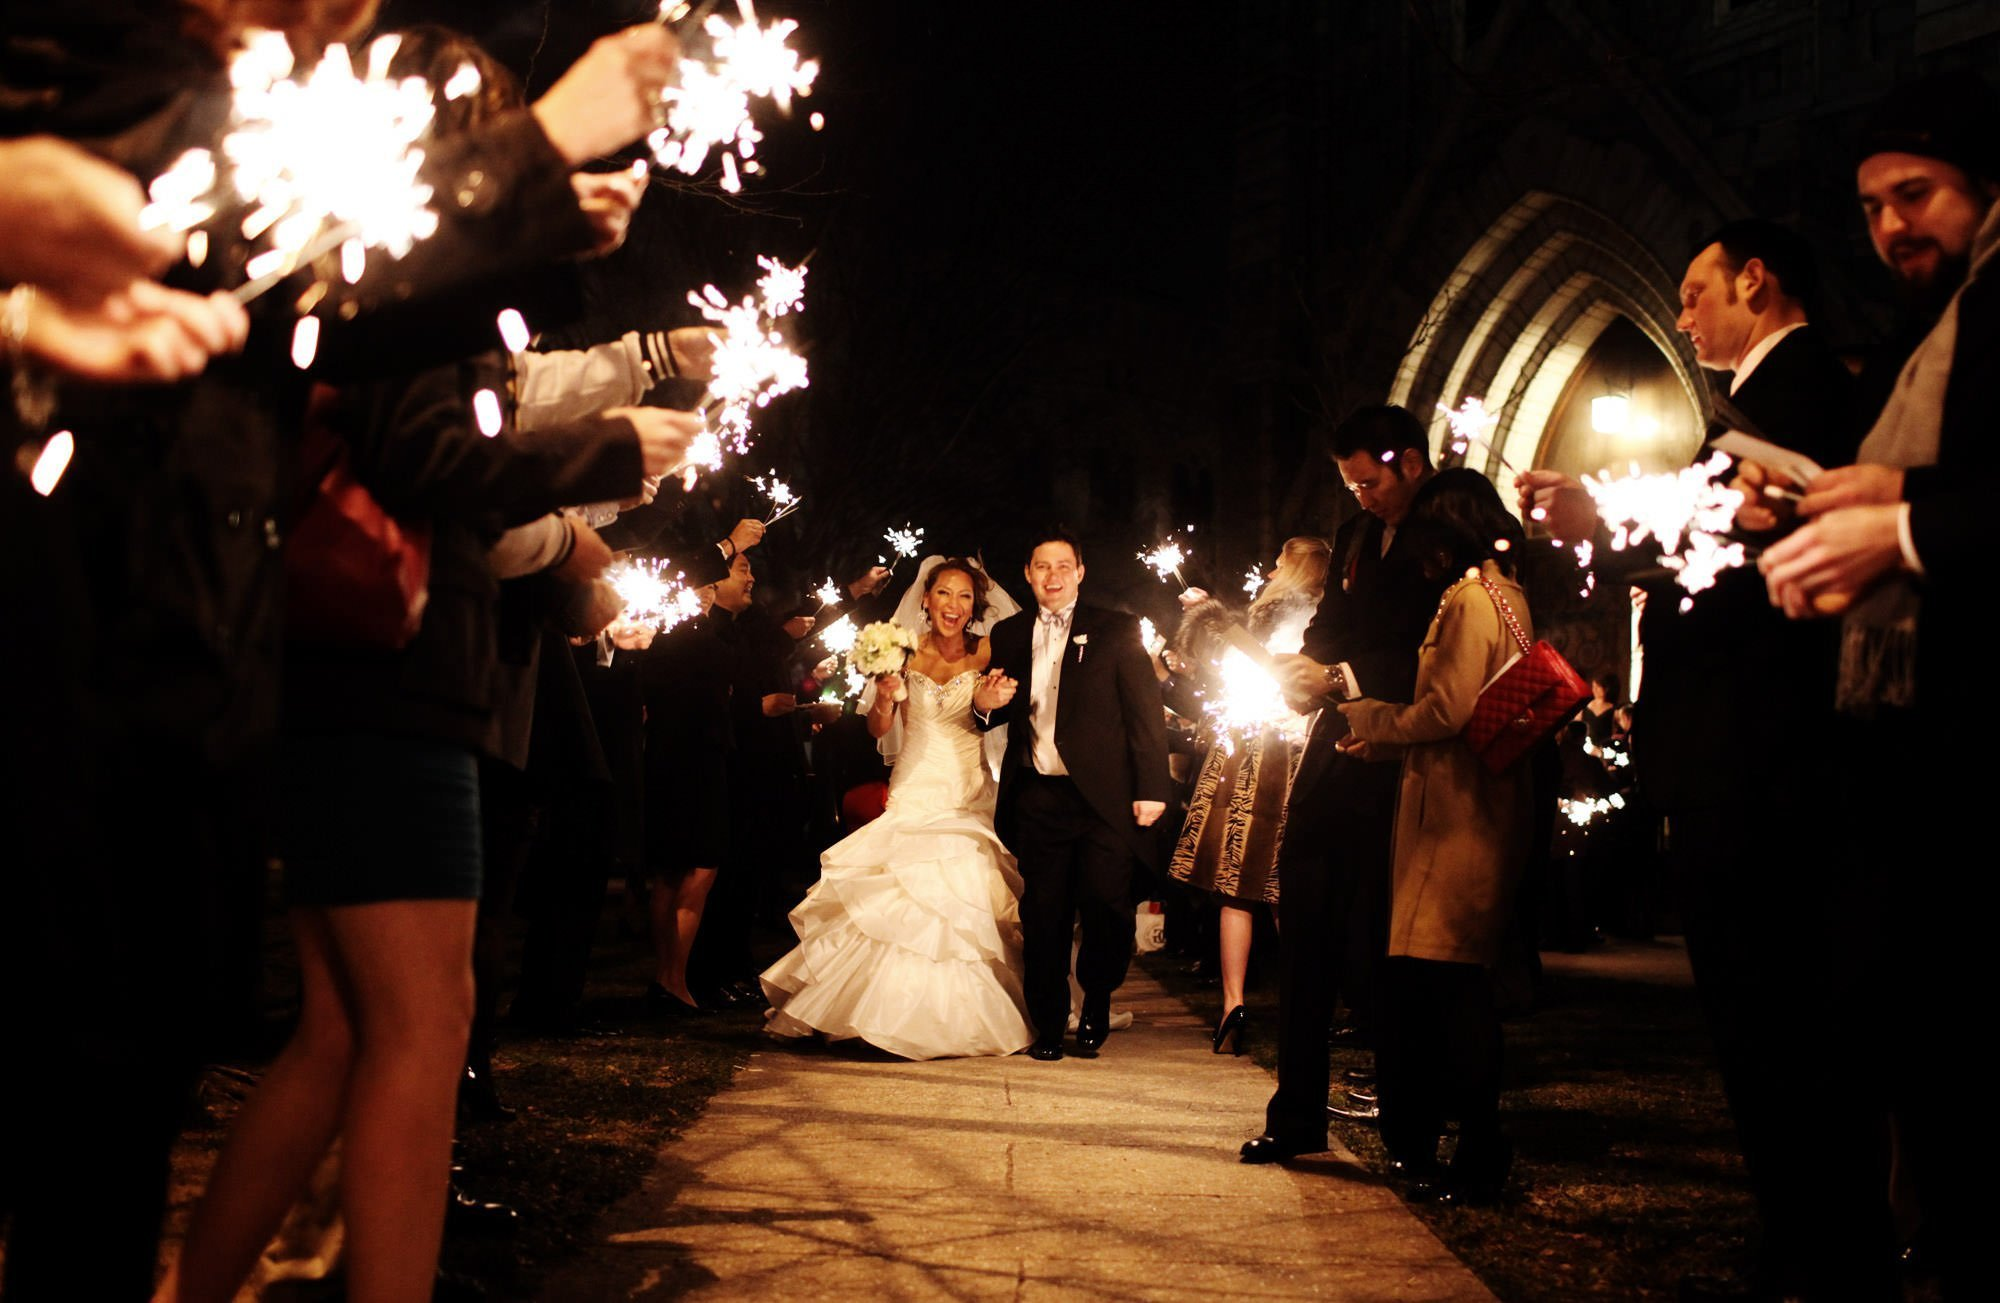 The bride and groom walk through sparklers after their wedding ceremony at Corpus Christi Church in Baltimore, MD.